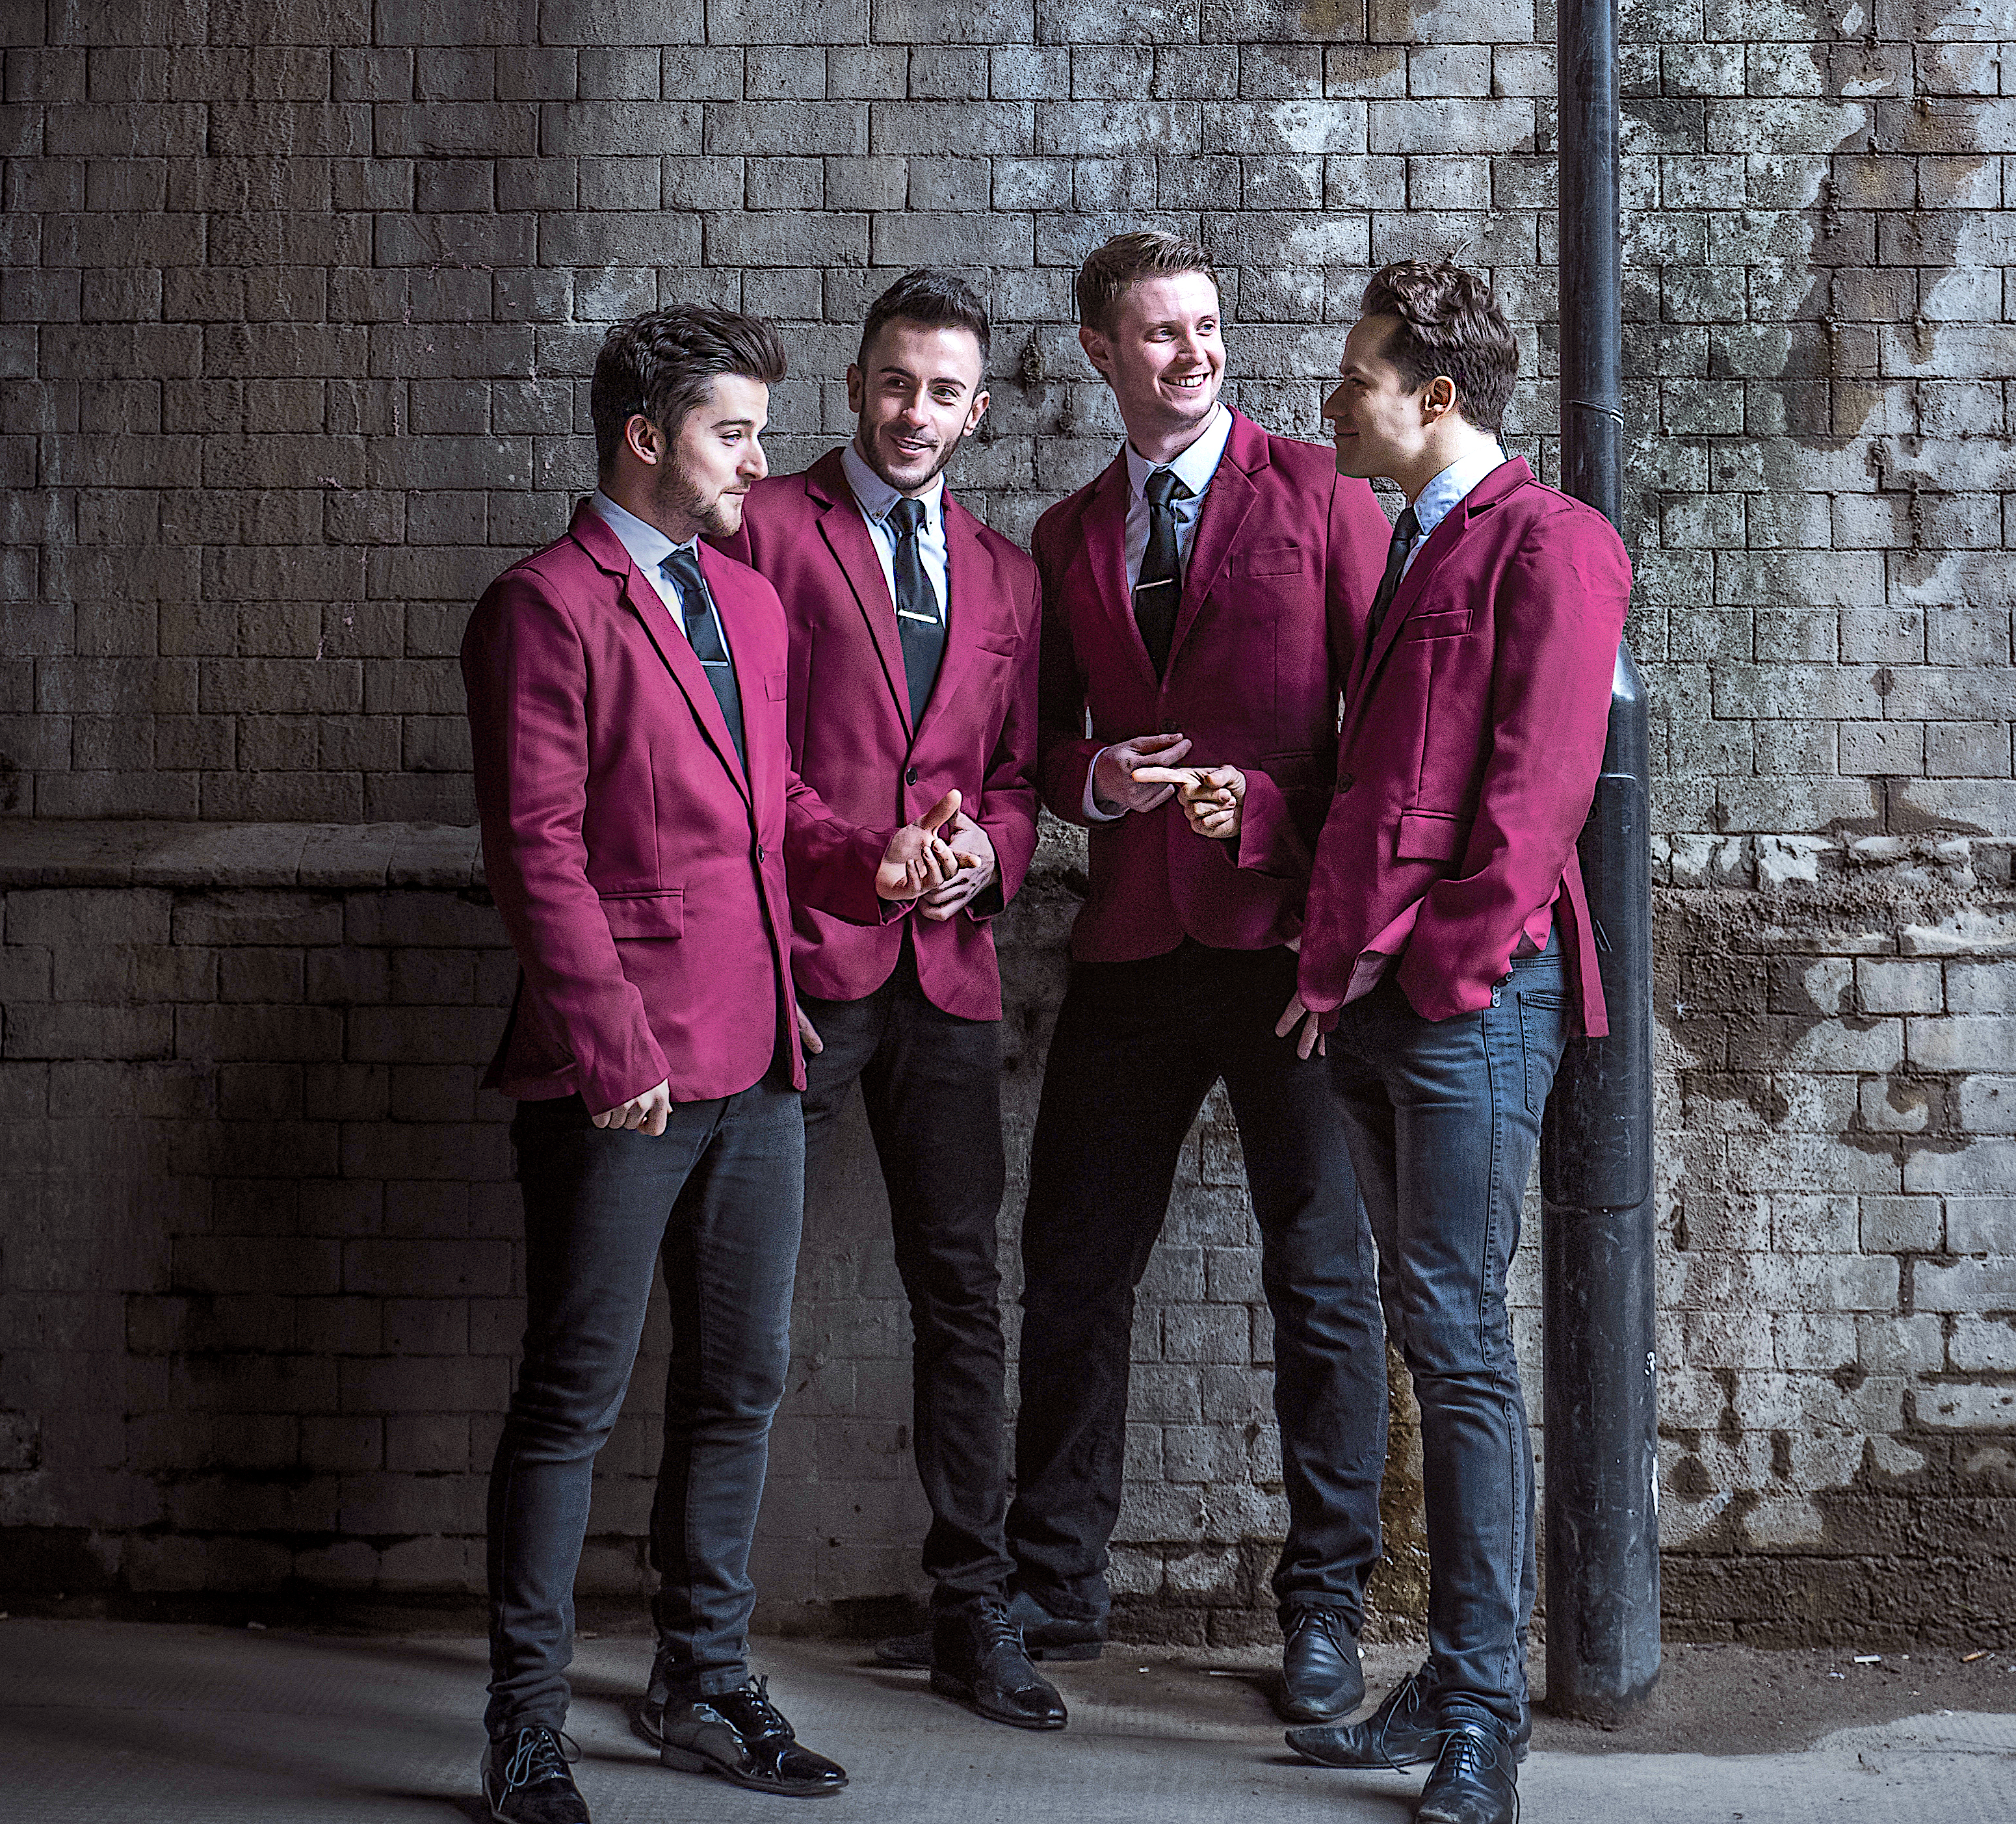 The West Enders | Tribute to Frankie Valli & The 4 Seasons/Jersey Boys | Steve Allen Entertainments